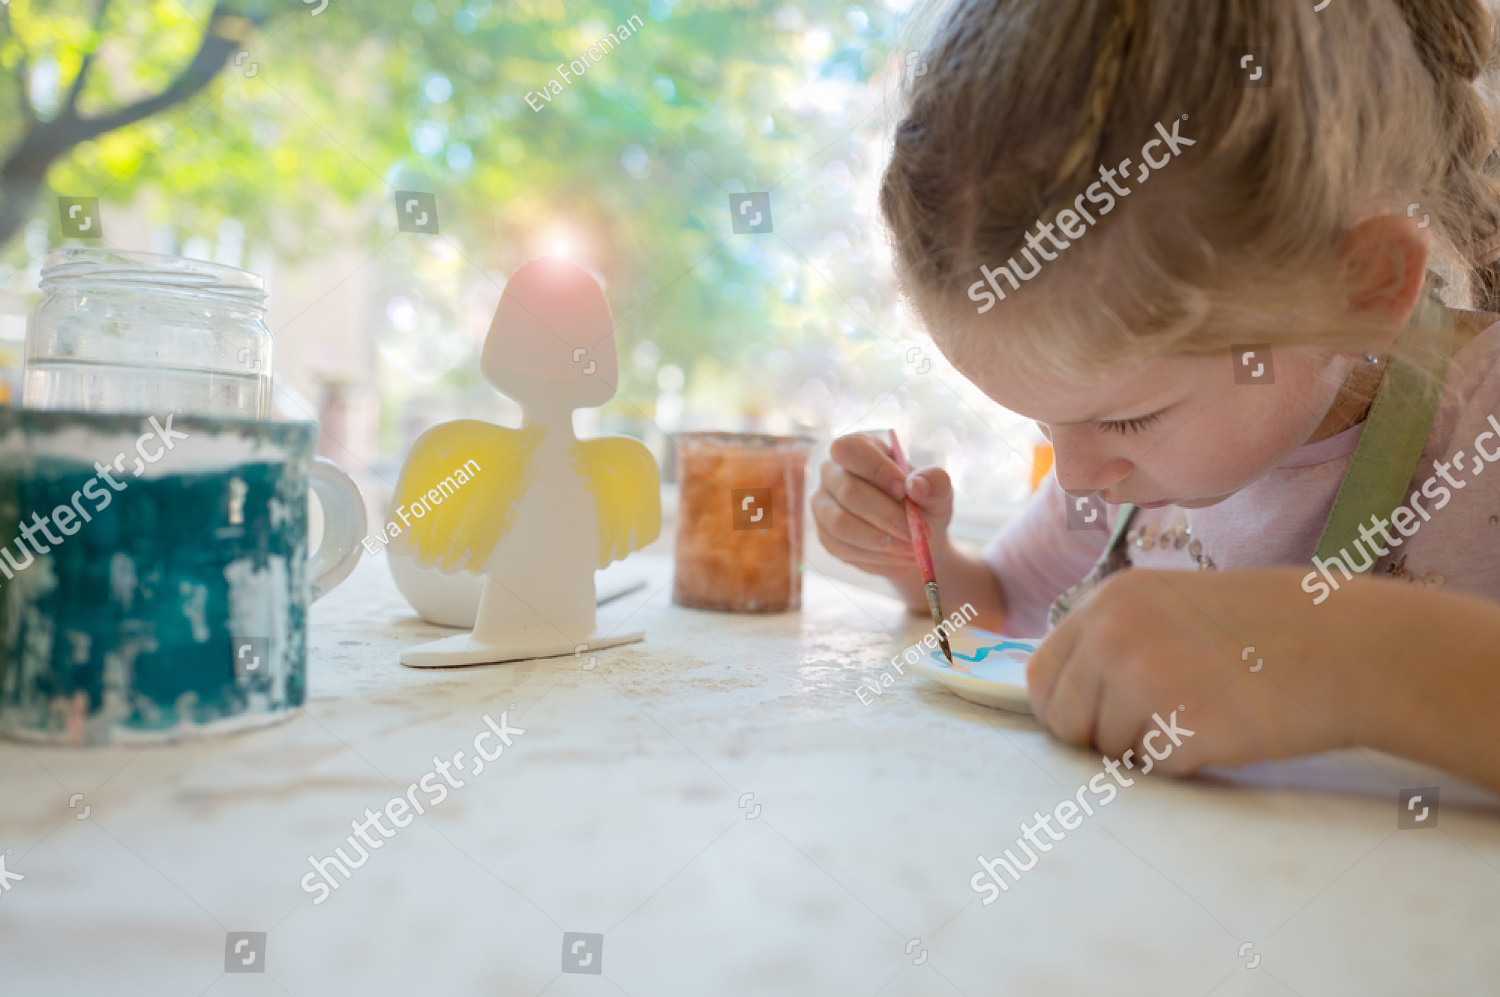 stock-photo-young-girl-painting-in-pottery-workshop-using-colourful-paints-and-brush-725047486.jpg